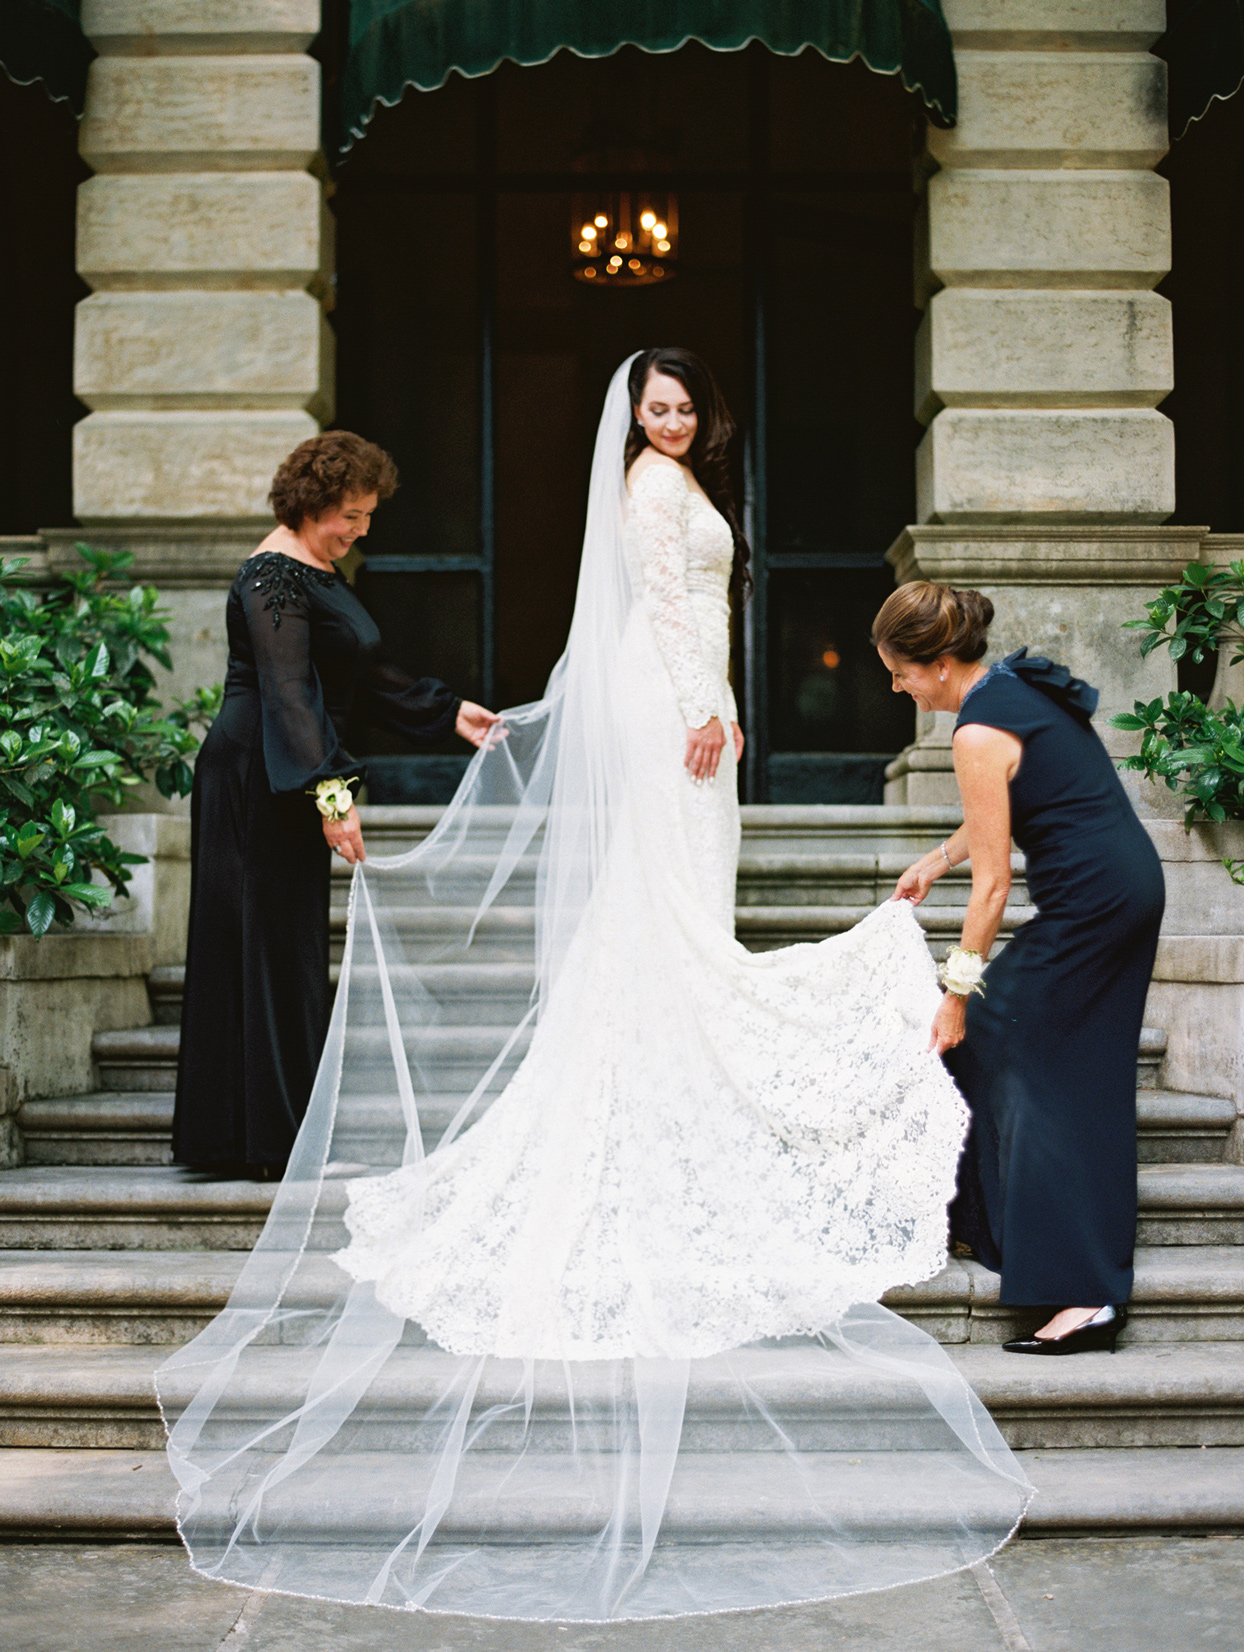 mother of the bride adjusting train of brides gown